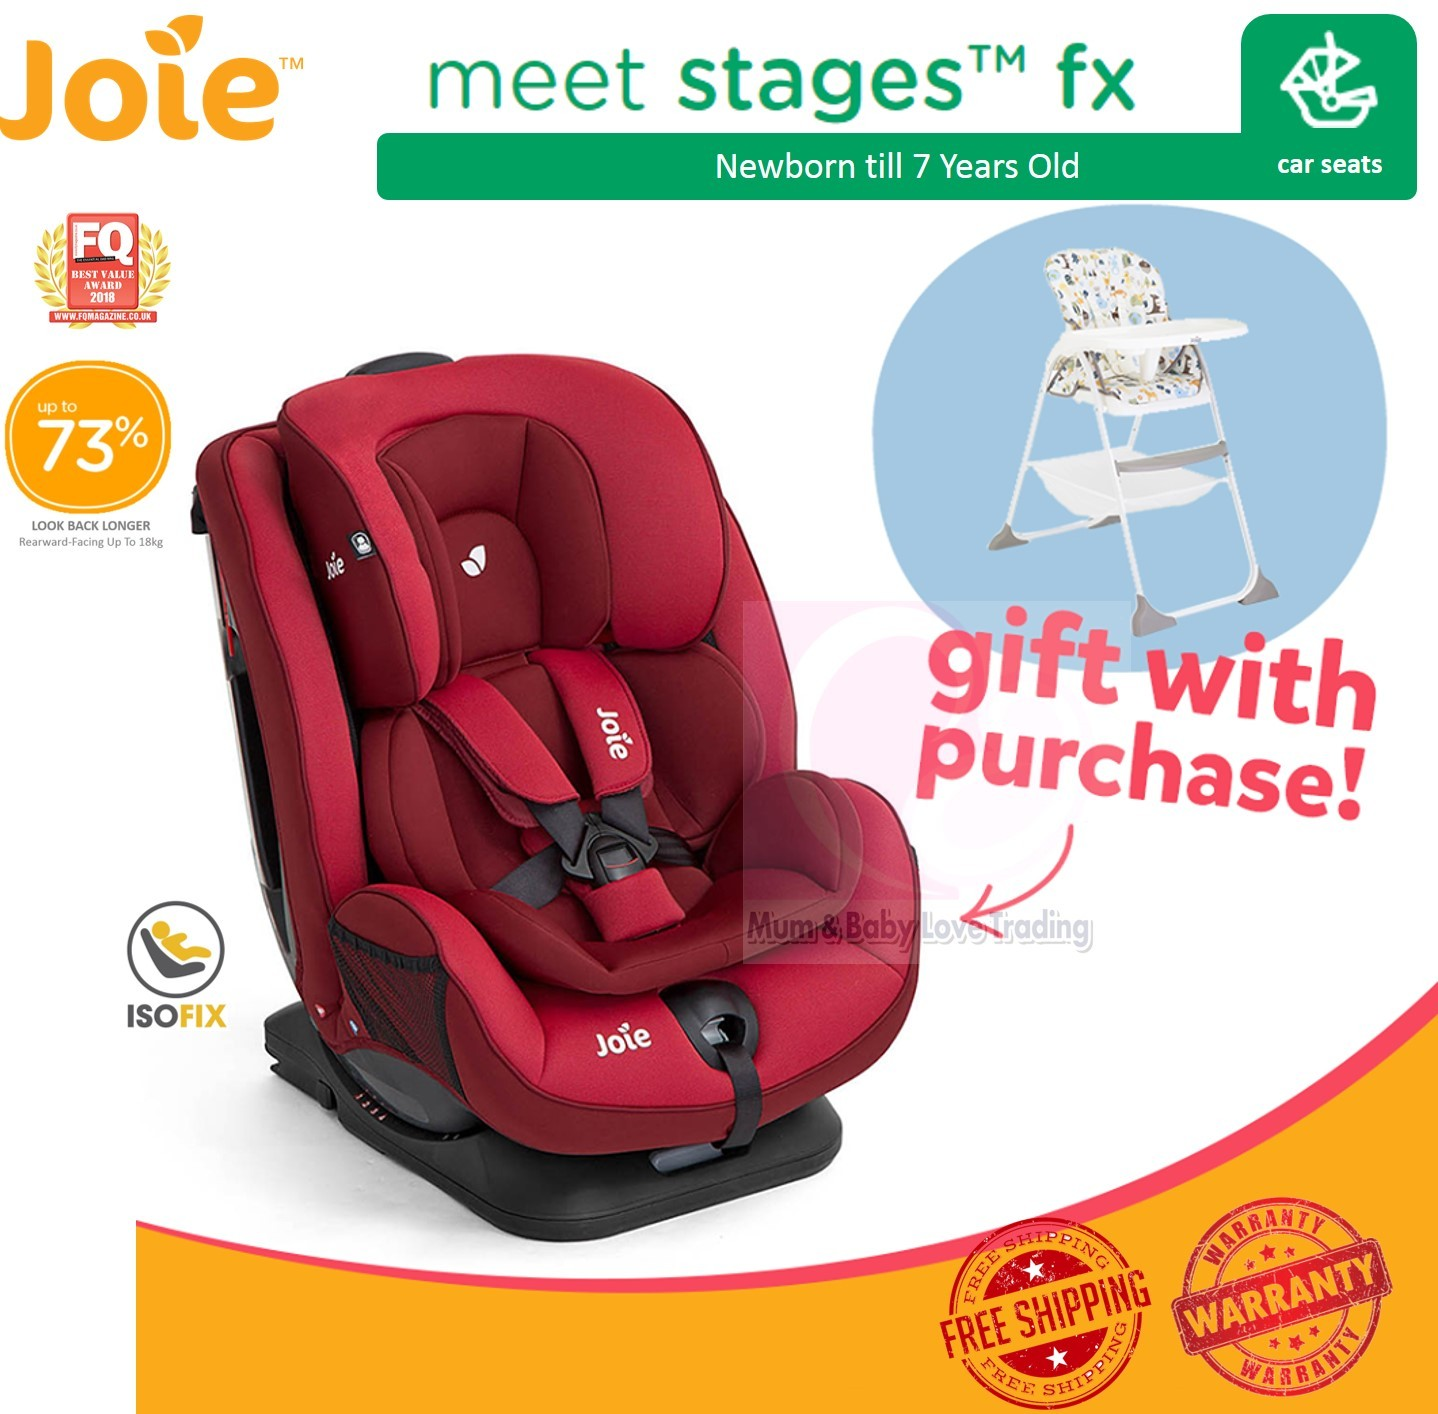 Joie Baby Car Seat Usa Joie Stages Fx Convertible Baby Car Seat With Isofix